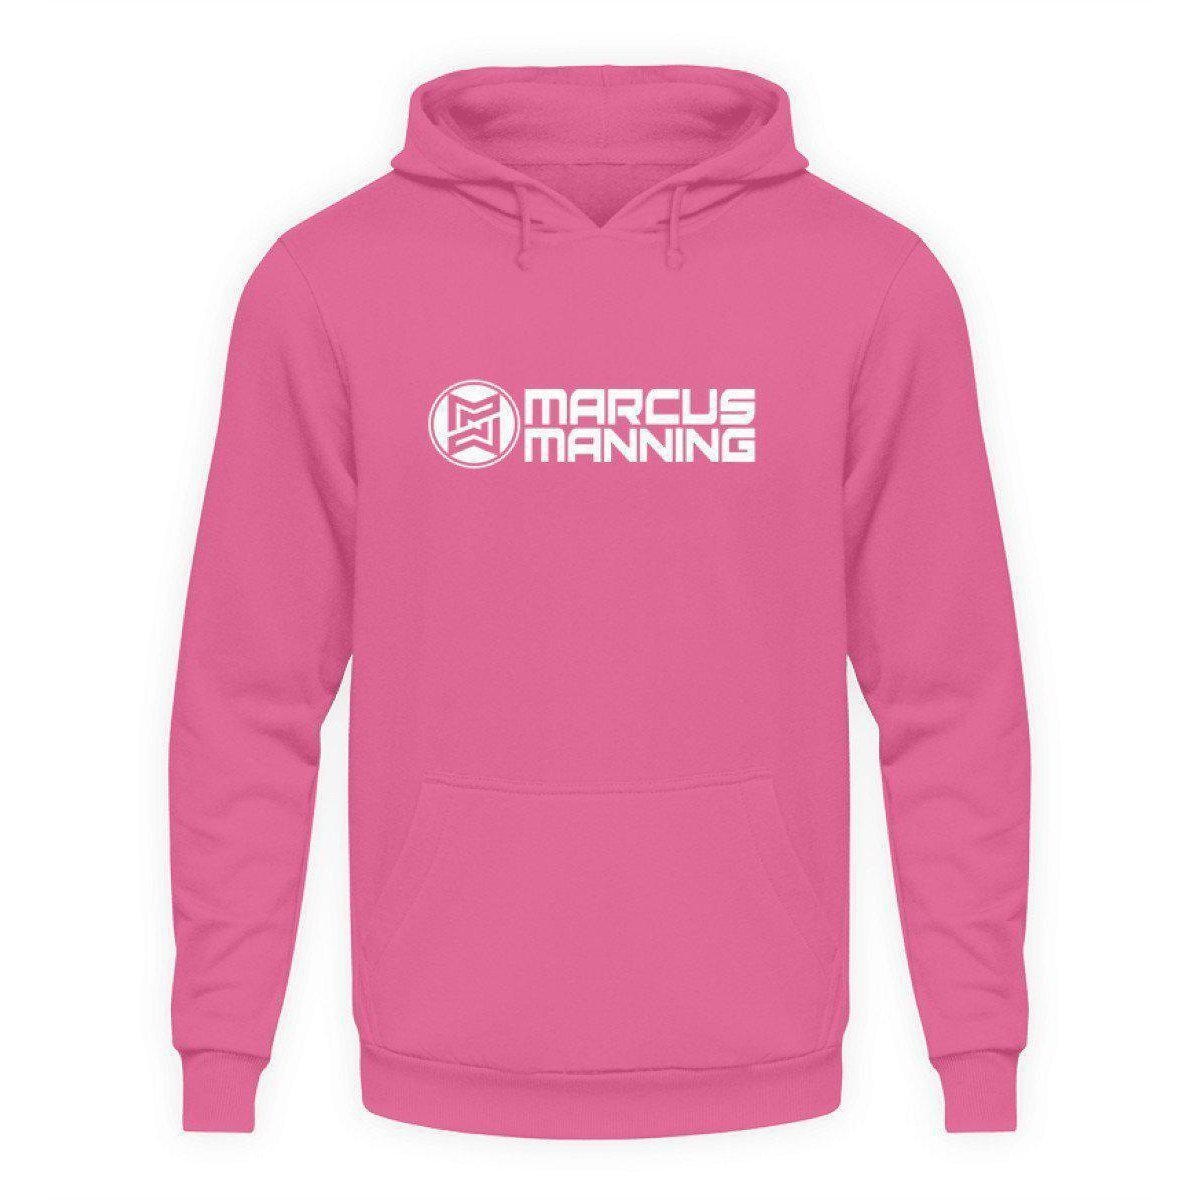 Marcus Manning Black Collection - Unisex Kapuzenpullover Hoodie Unisex Hoodie Helles Pink / L - Rave On!® der Club & Techno Szene Shop für Coole Junge Mode Streetwear Style & Fashion Outfits + Sexy Festival 420 Stuff